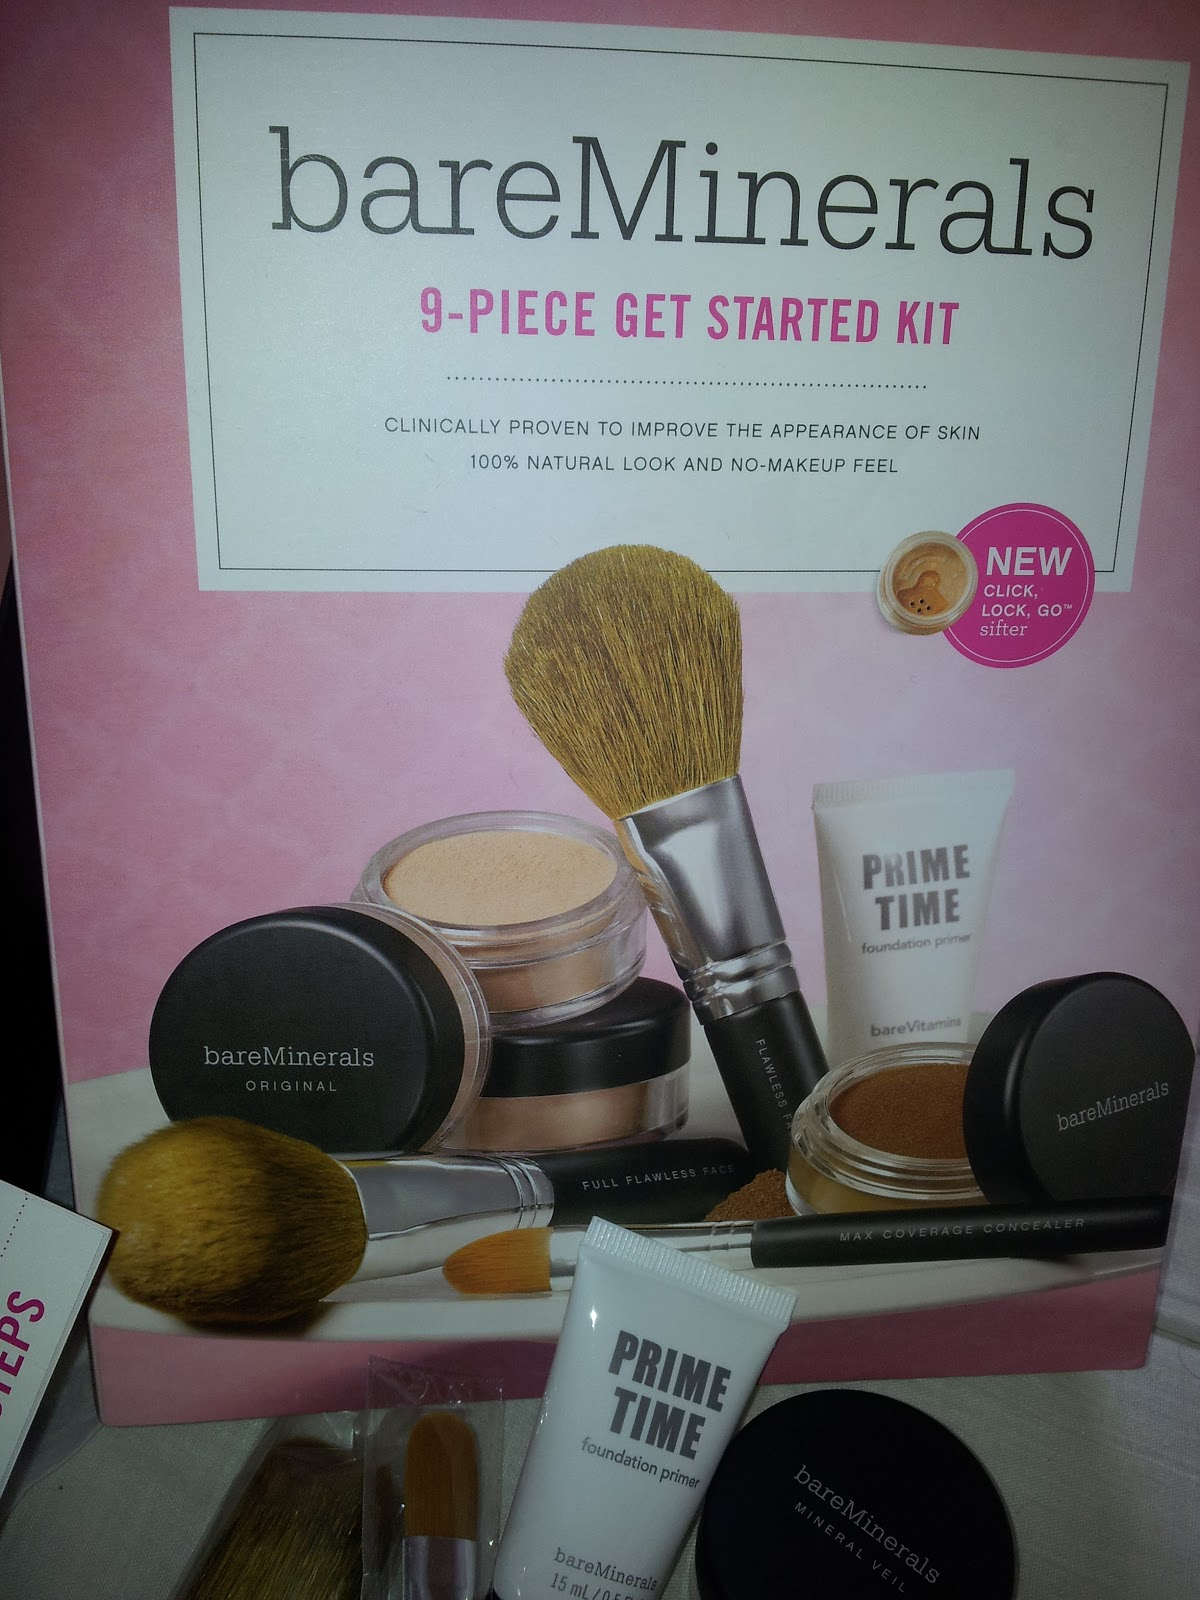 bareminerals get started kit 9 pieces